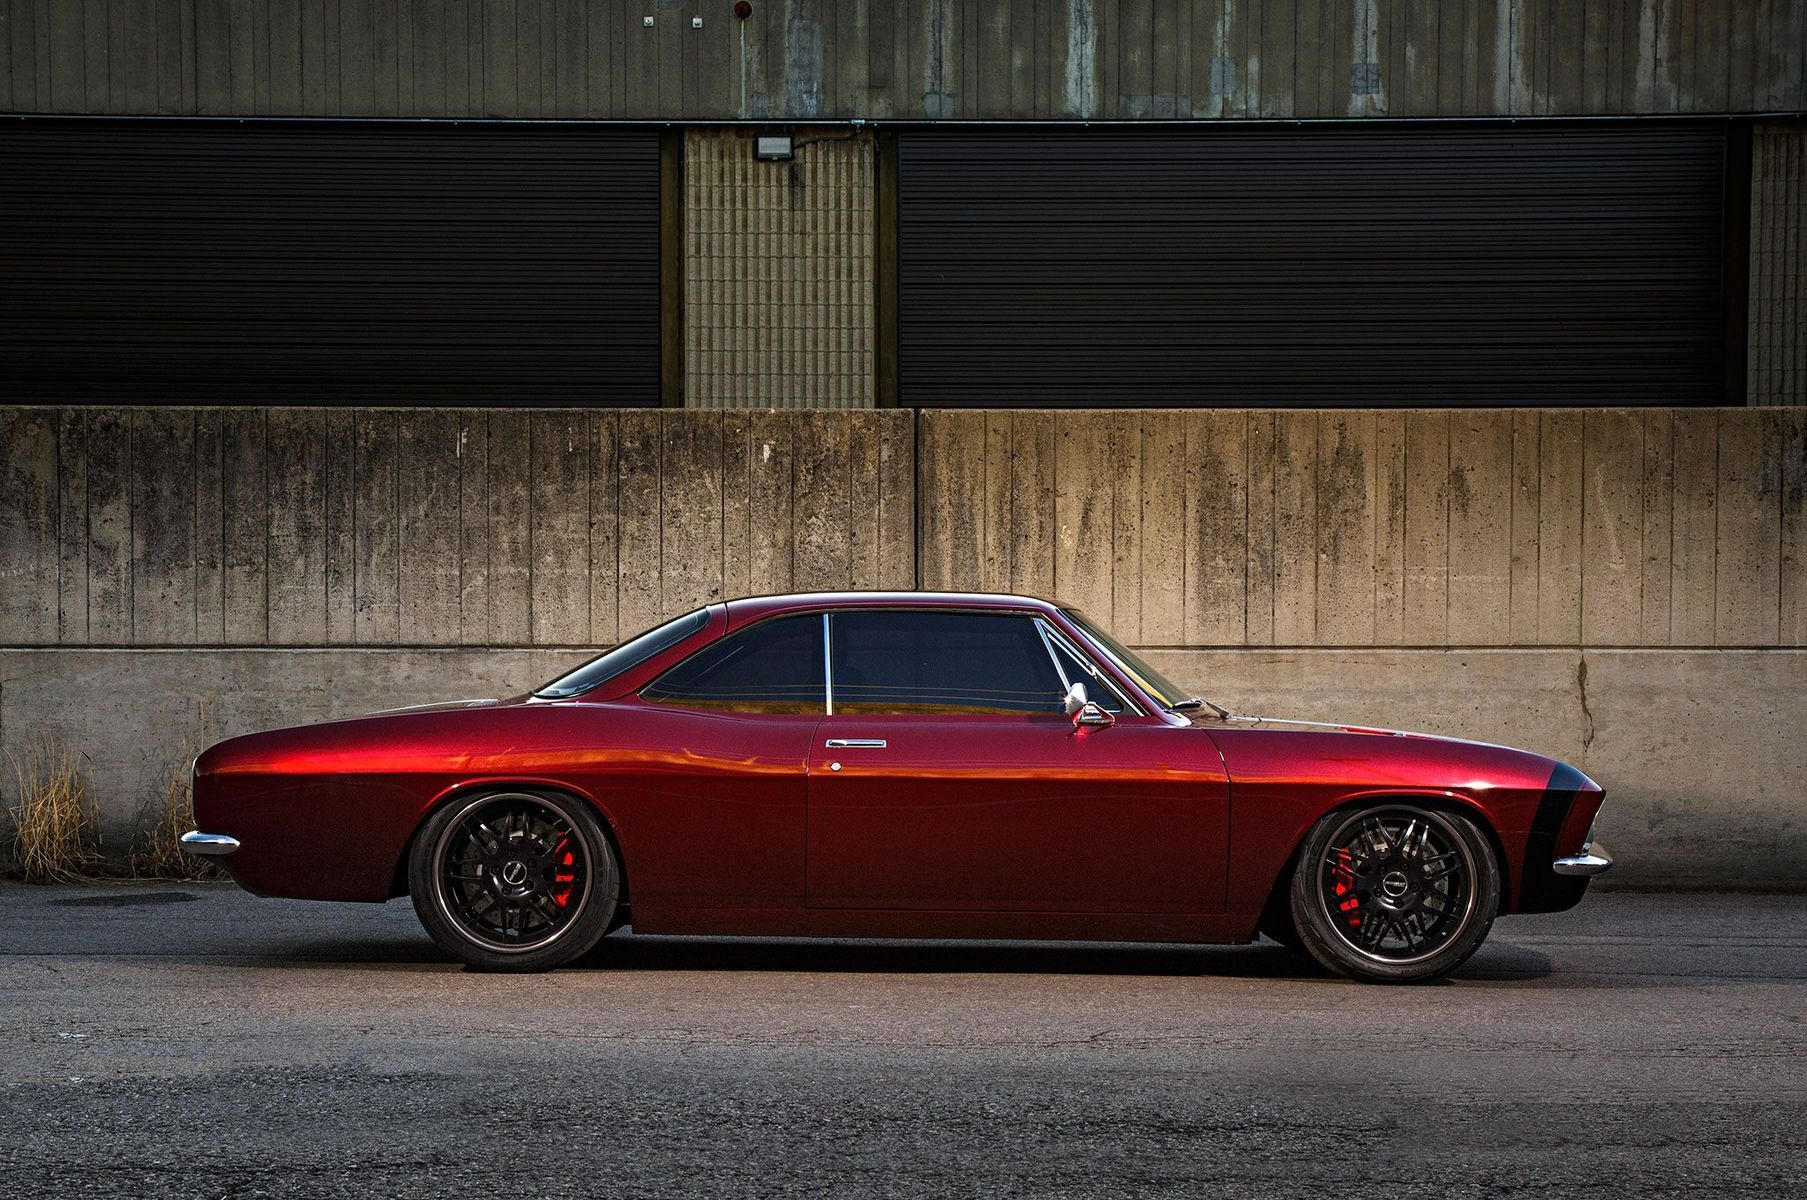 1966 Chevrolet Corvair | JB Granger's Pro-Touring '66 Chevy Corvair on Forgeline DE3P Wheels